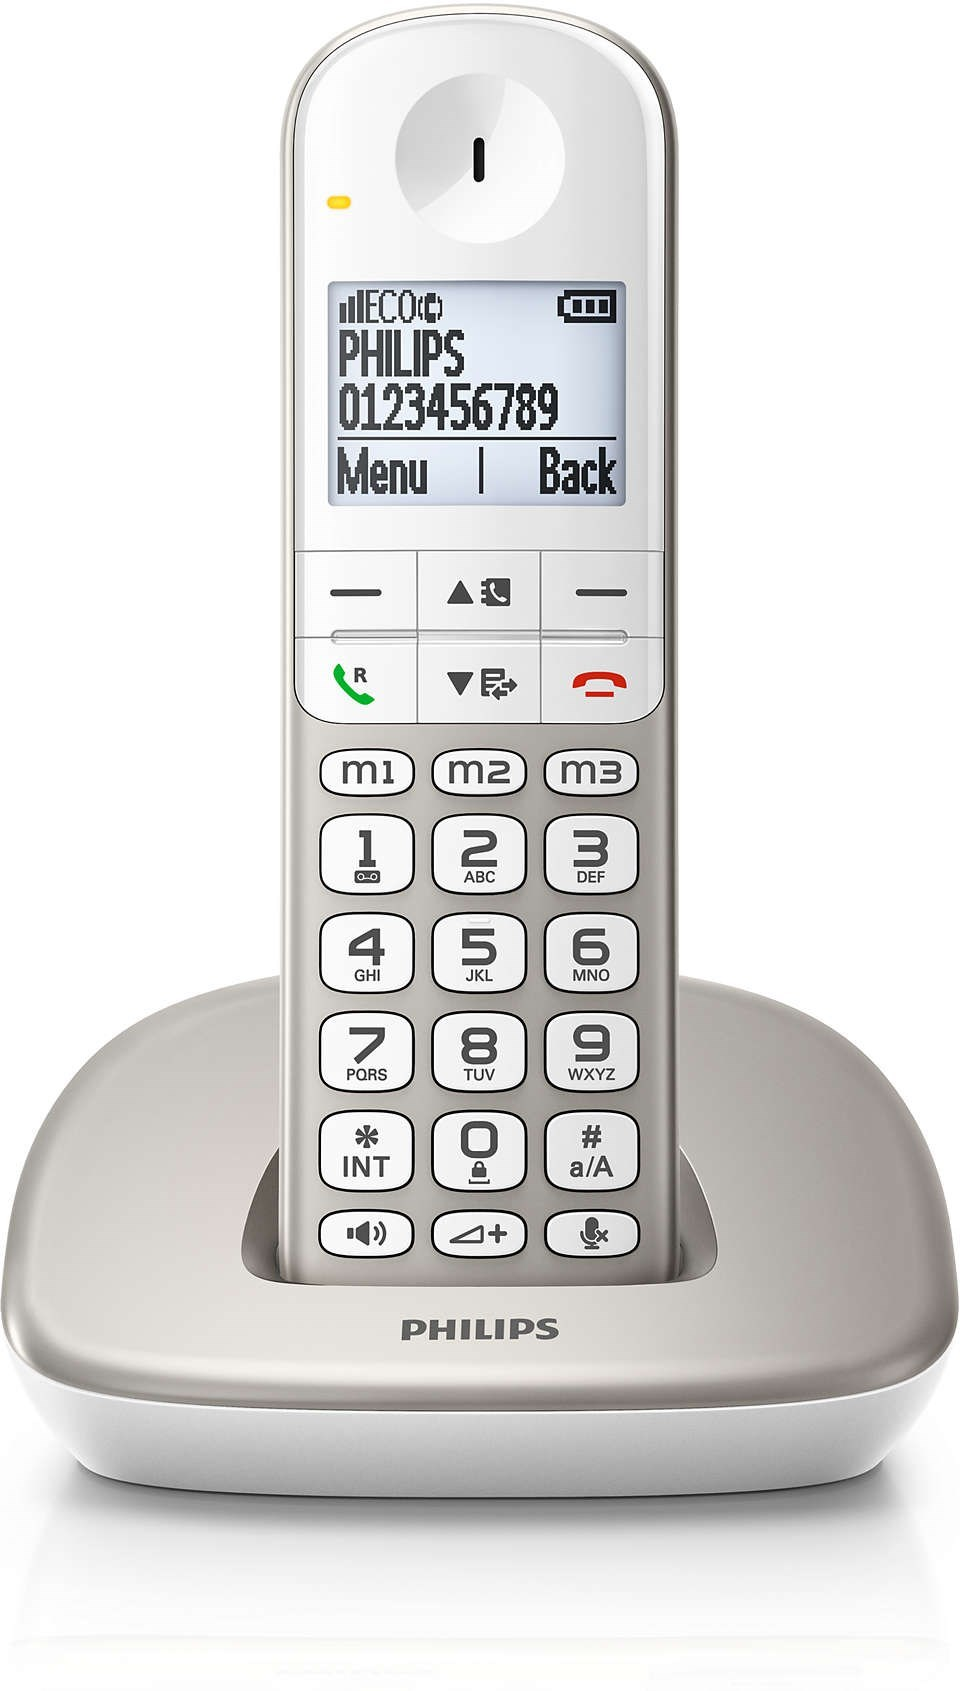 TELEFONO PHILIPS XL490 TECLAS GRANDES COMP. AUDIFO